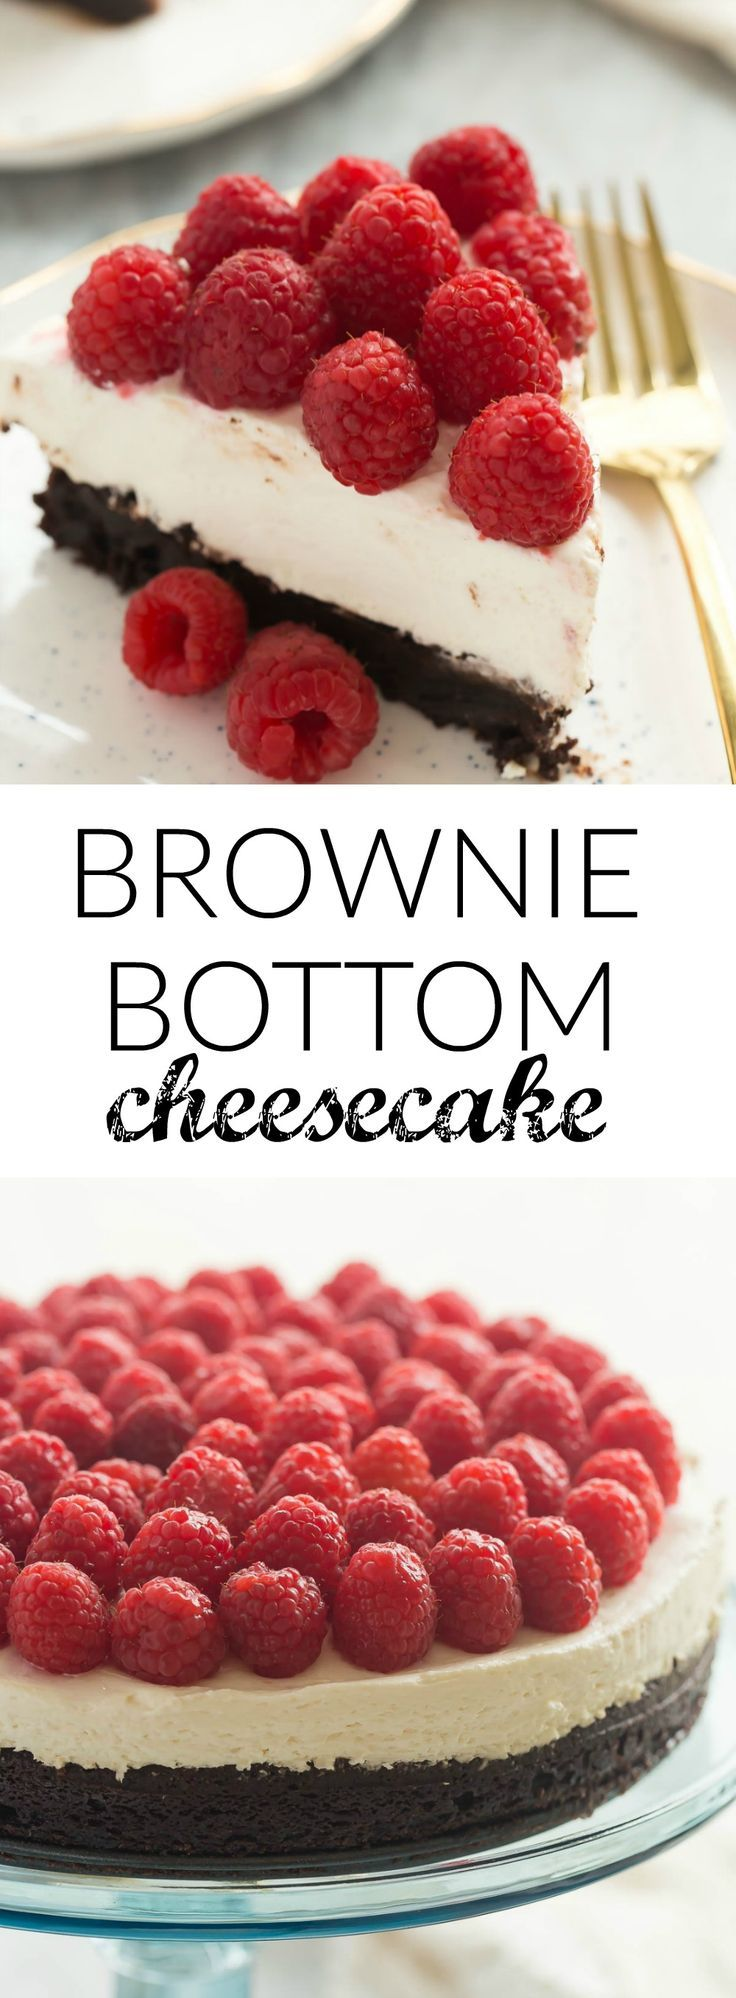 This Brownie Bottom Cheesecake is made with a fudgy, brownie base, a silky smooth no bake cheesecake and topped with piles of